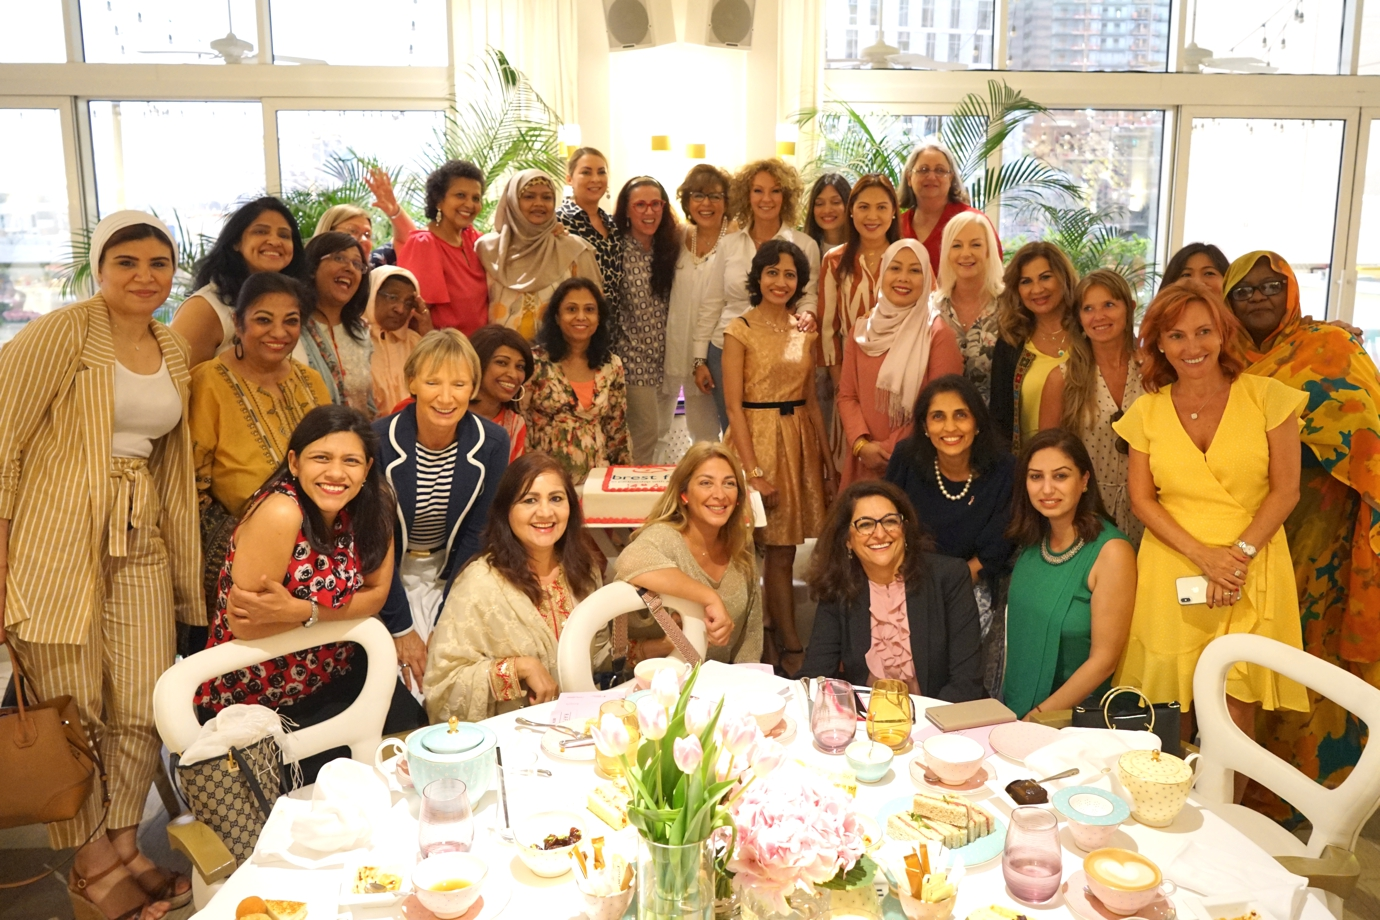 al jalila foundation, brest friends celebrate 14 years of treating breast cancer patients 1